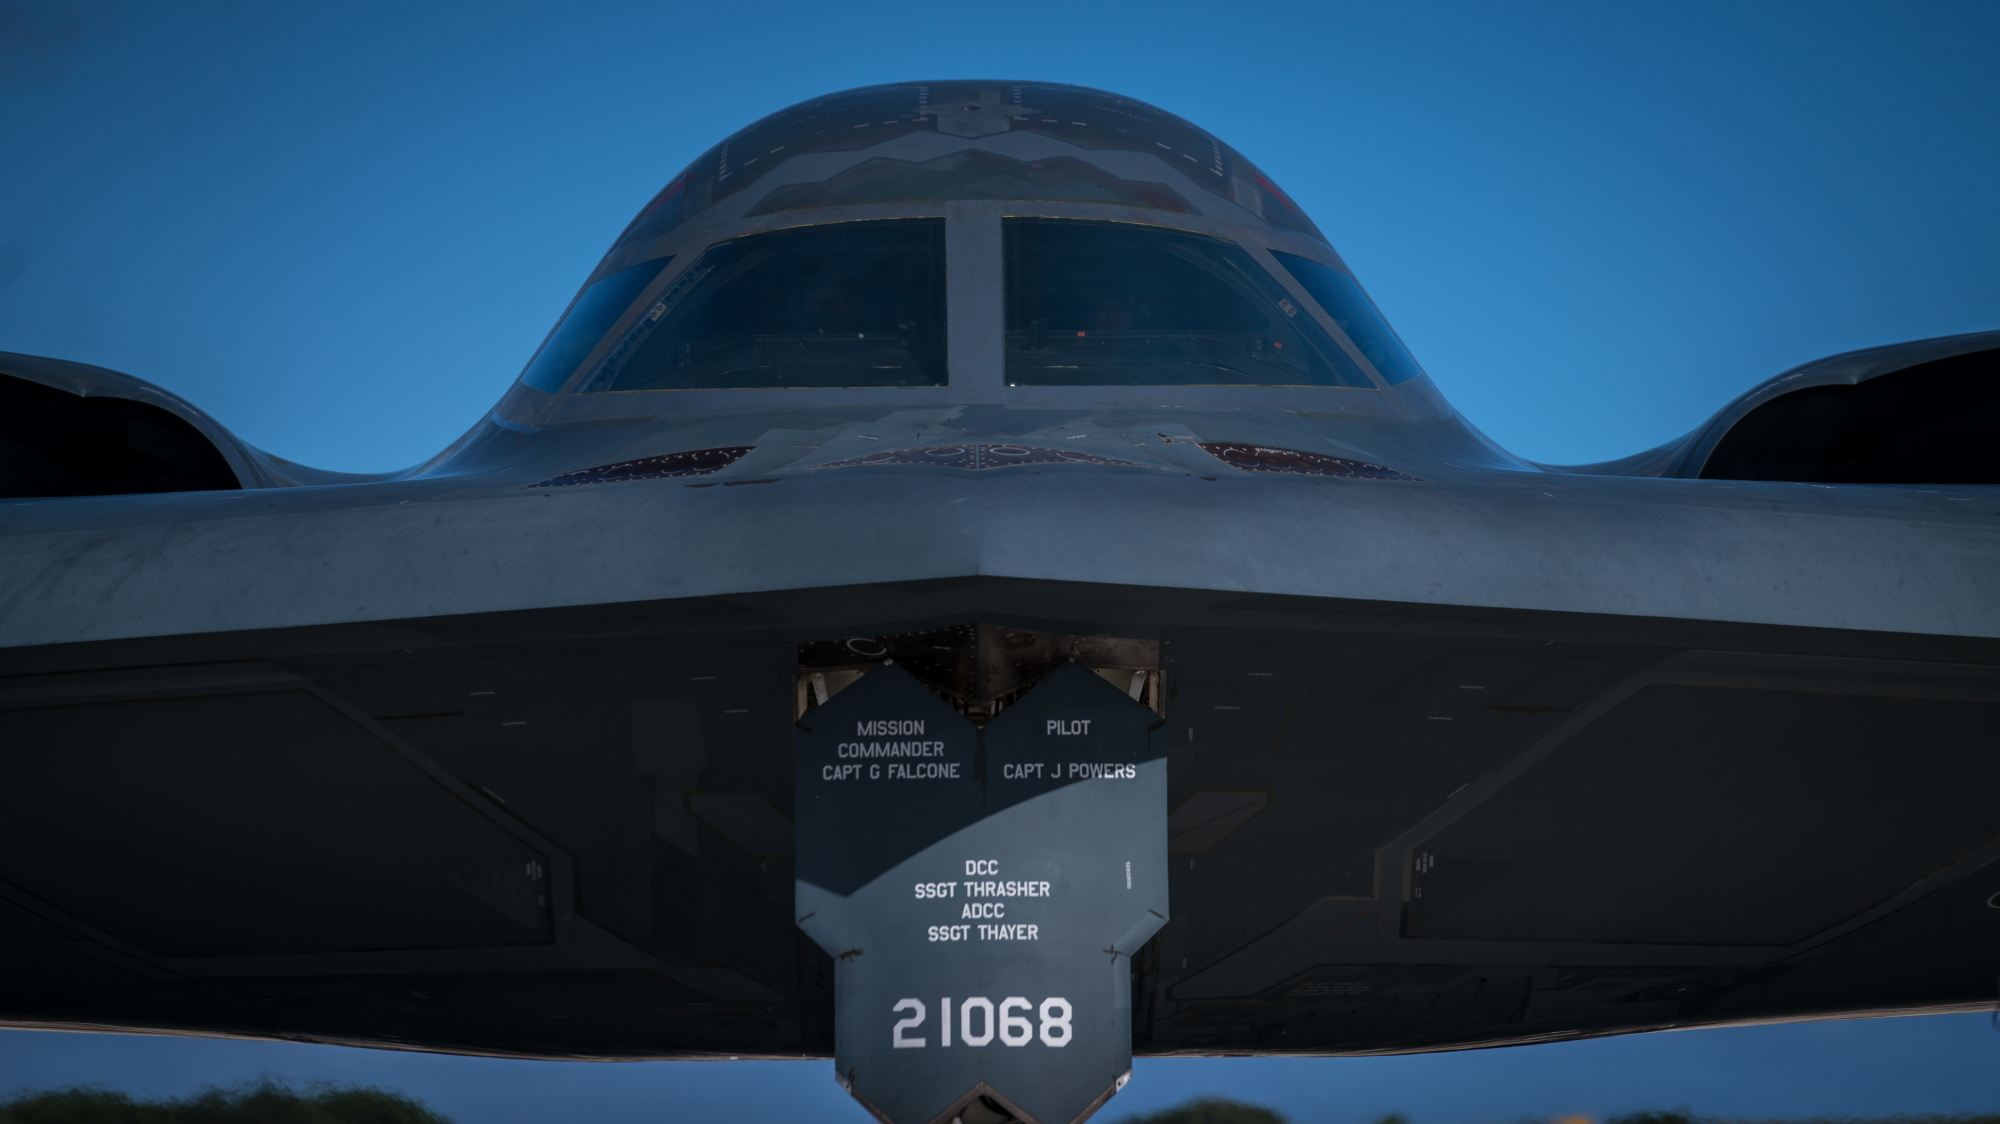 A B-2 stealth jet taxis at Andersen Air Force Base in Guam on Jan. 8. The U.S. has been deploying bombers and aircraft carriers to Guam, raising speculation it is preparing for a military conflict. | U.S. AIR FORCE